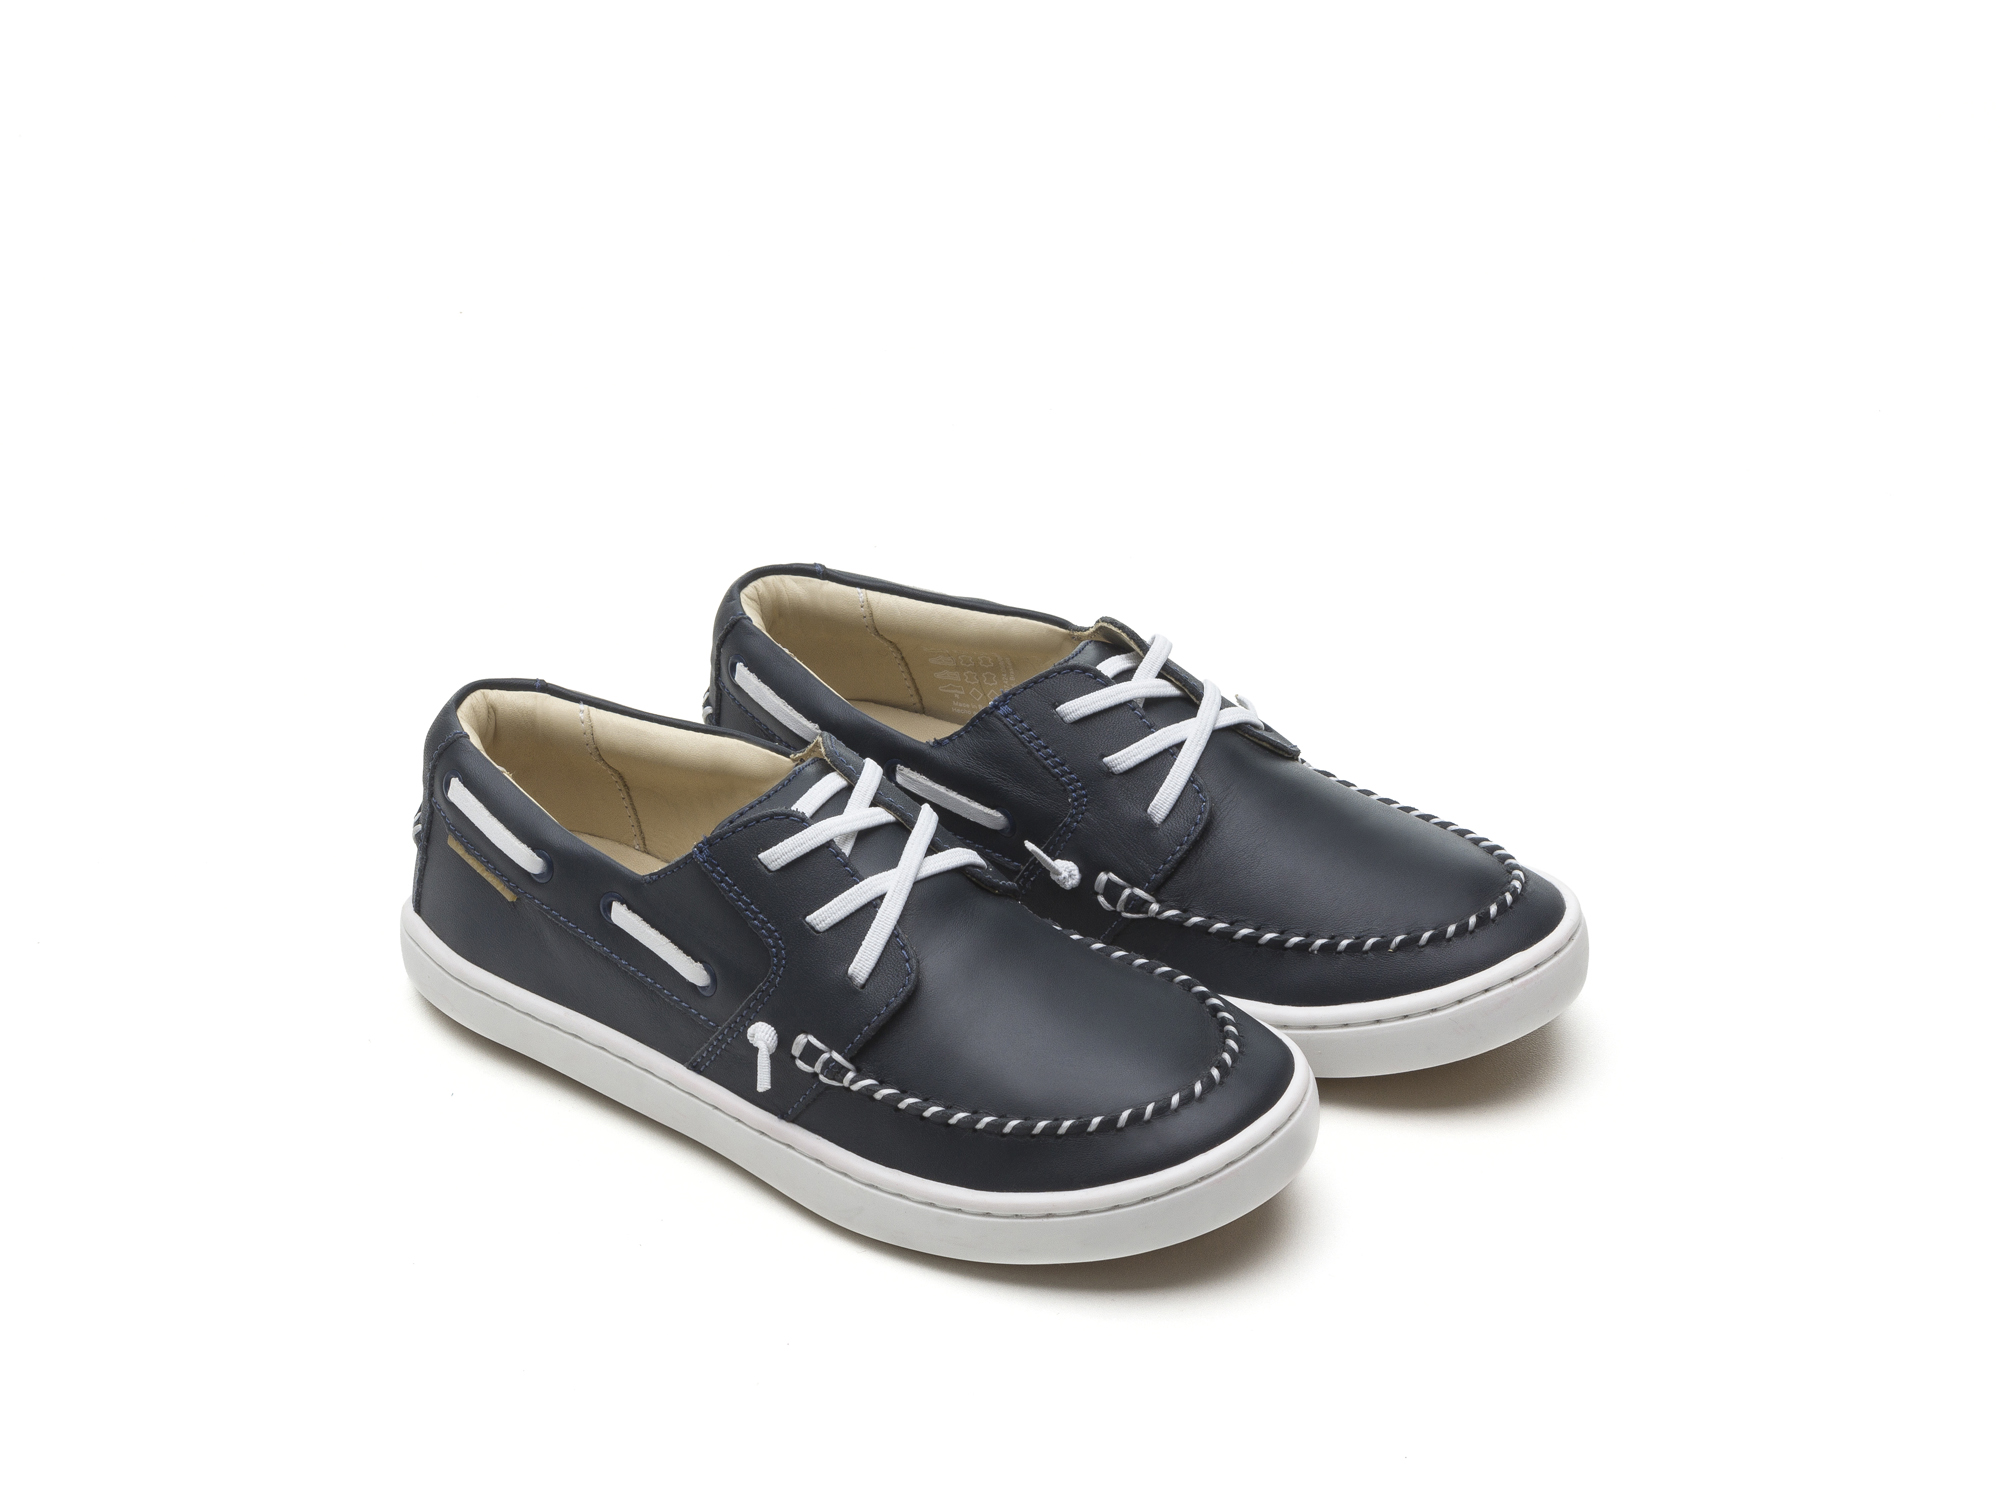 Tênis Snap Navy/ White Junior 4 à 8 anos - 0